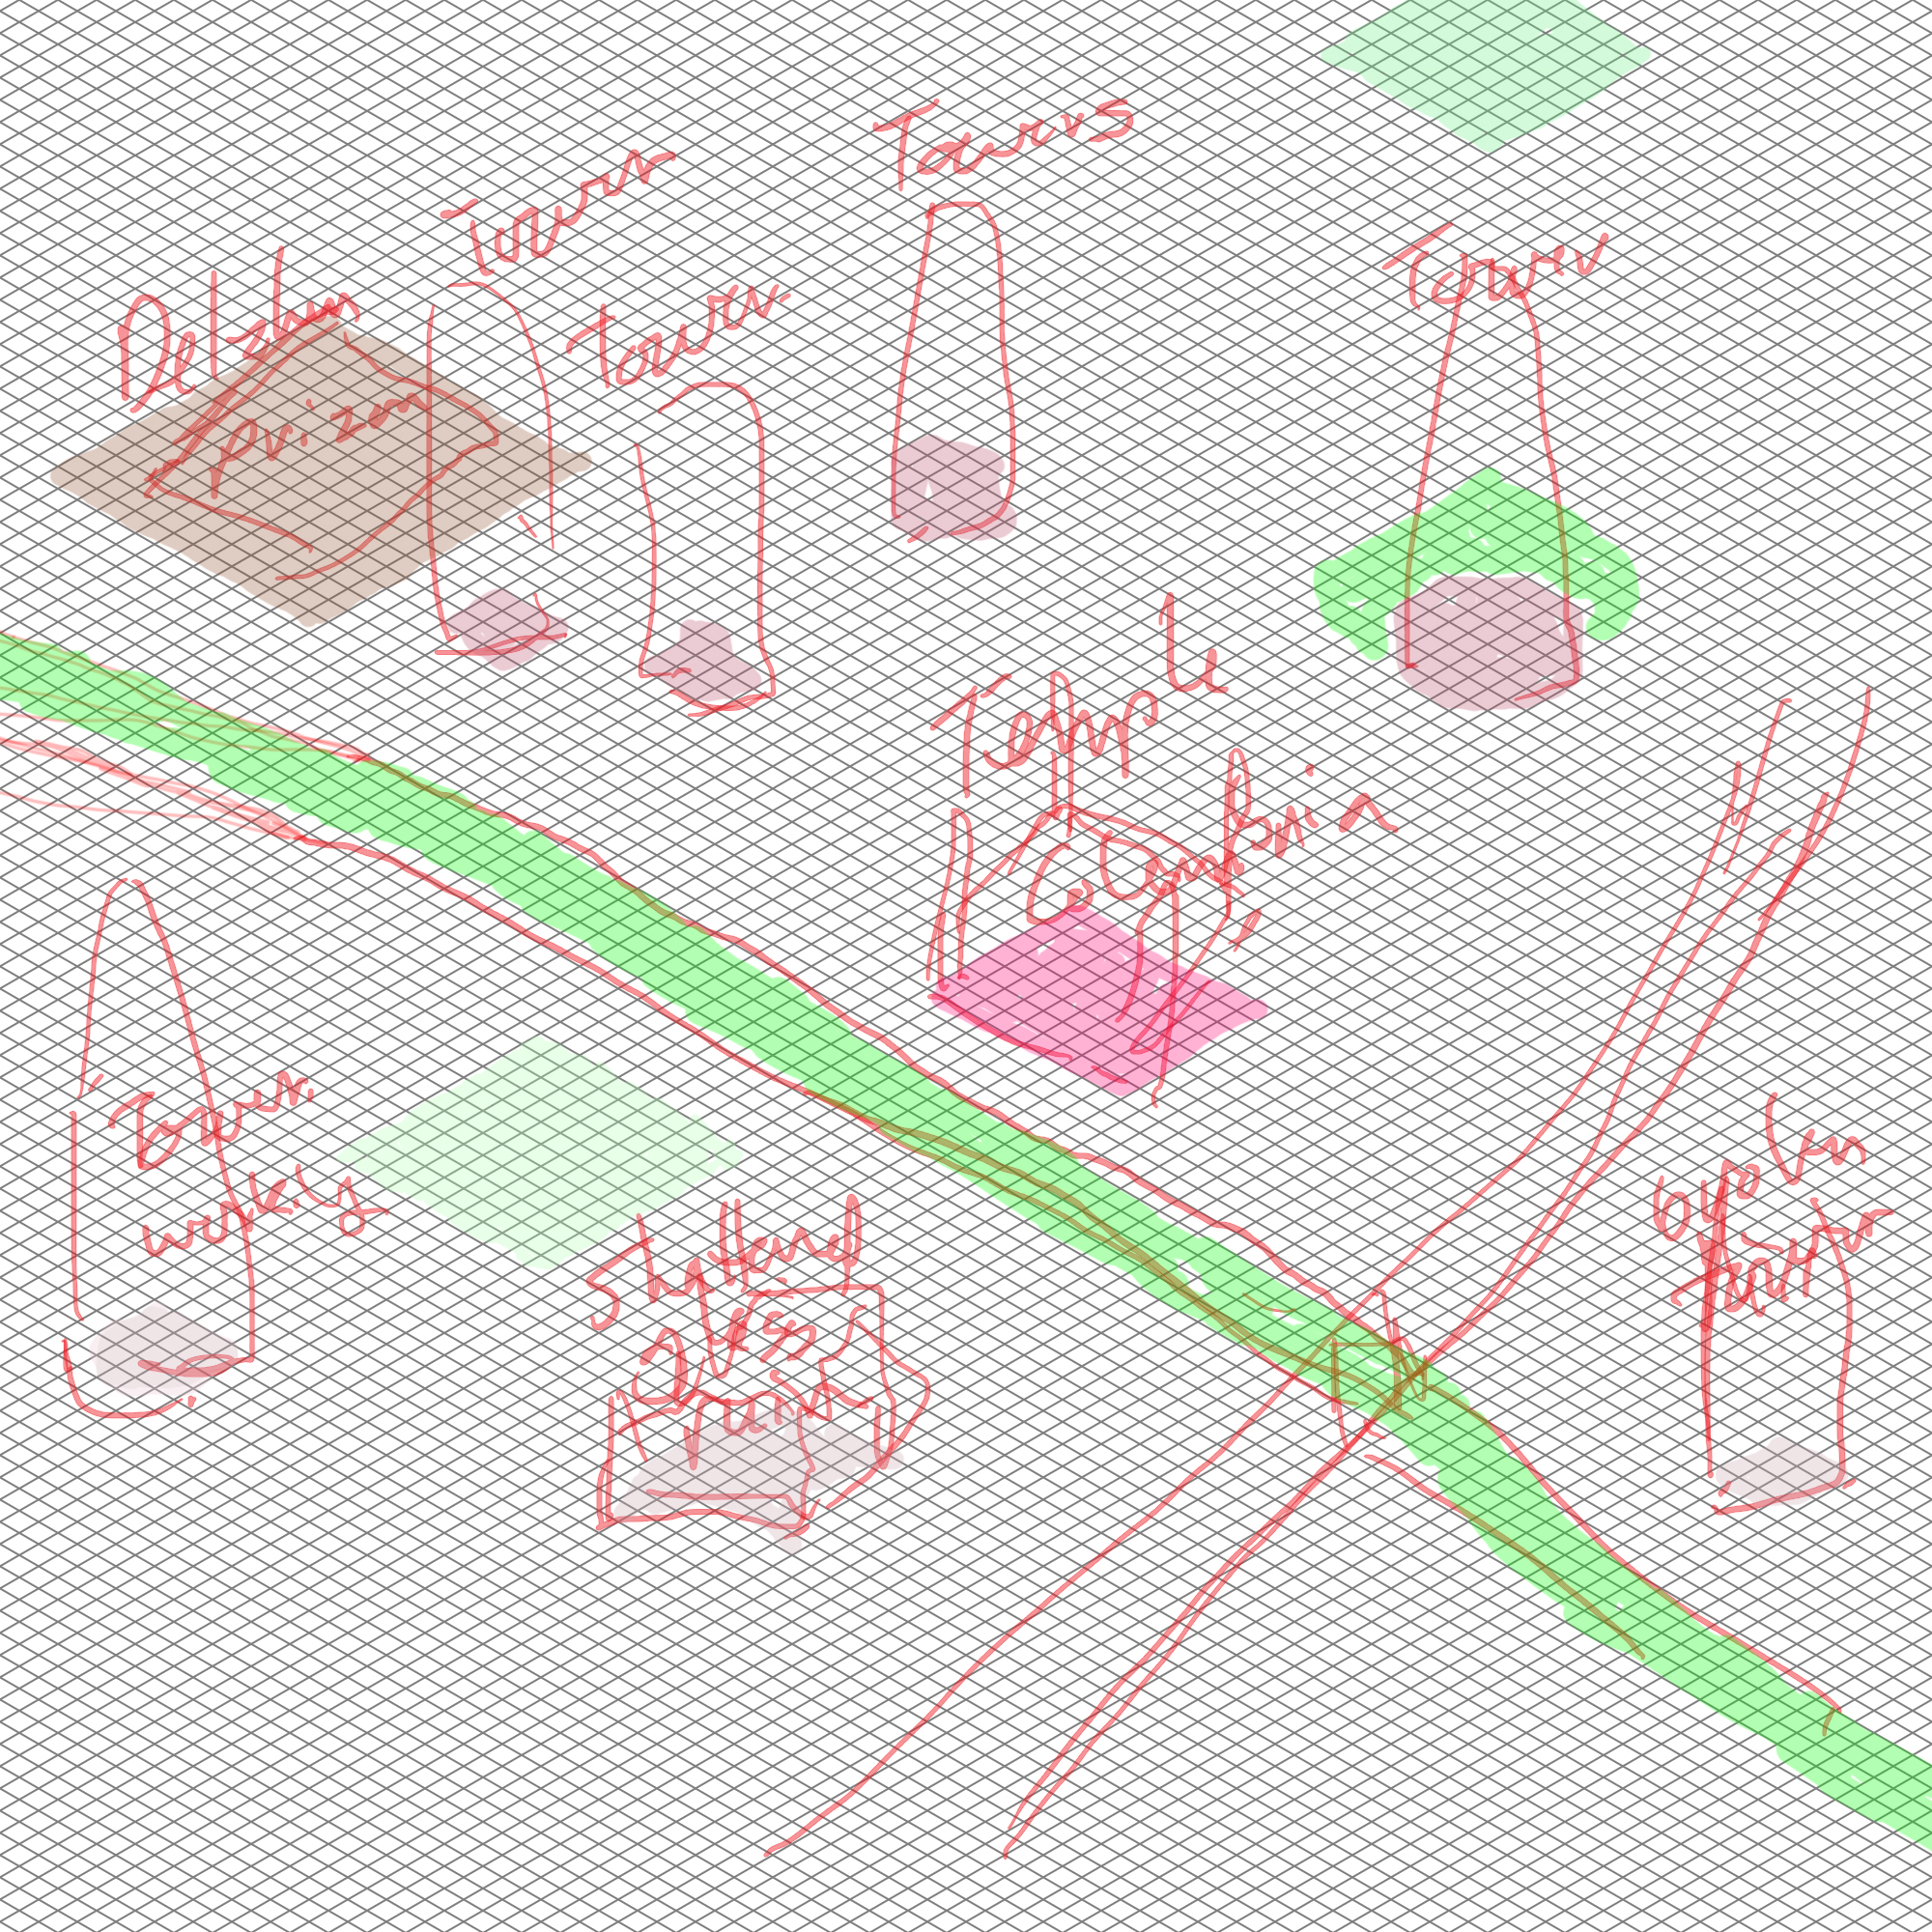 Basic layout and plan for the city, or at least the section of city that the map will represent.  This image includes an isomorphic grid.